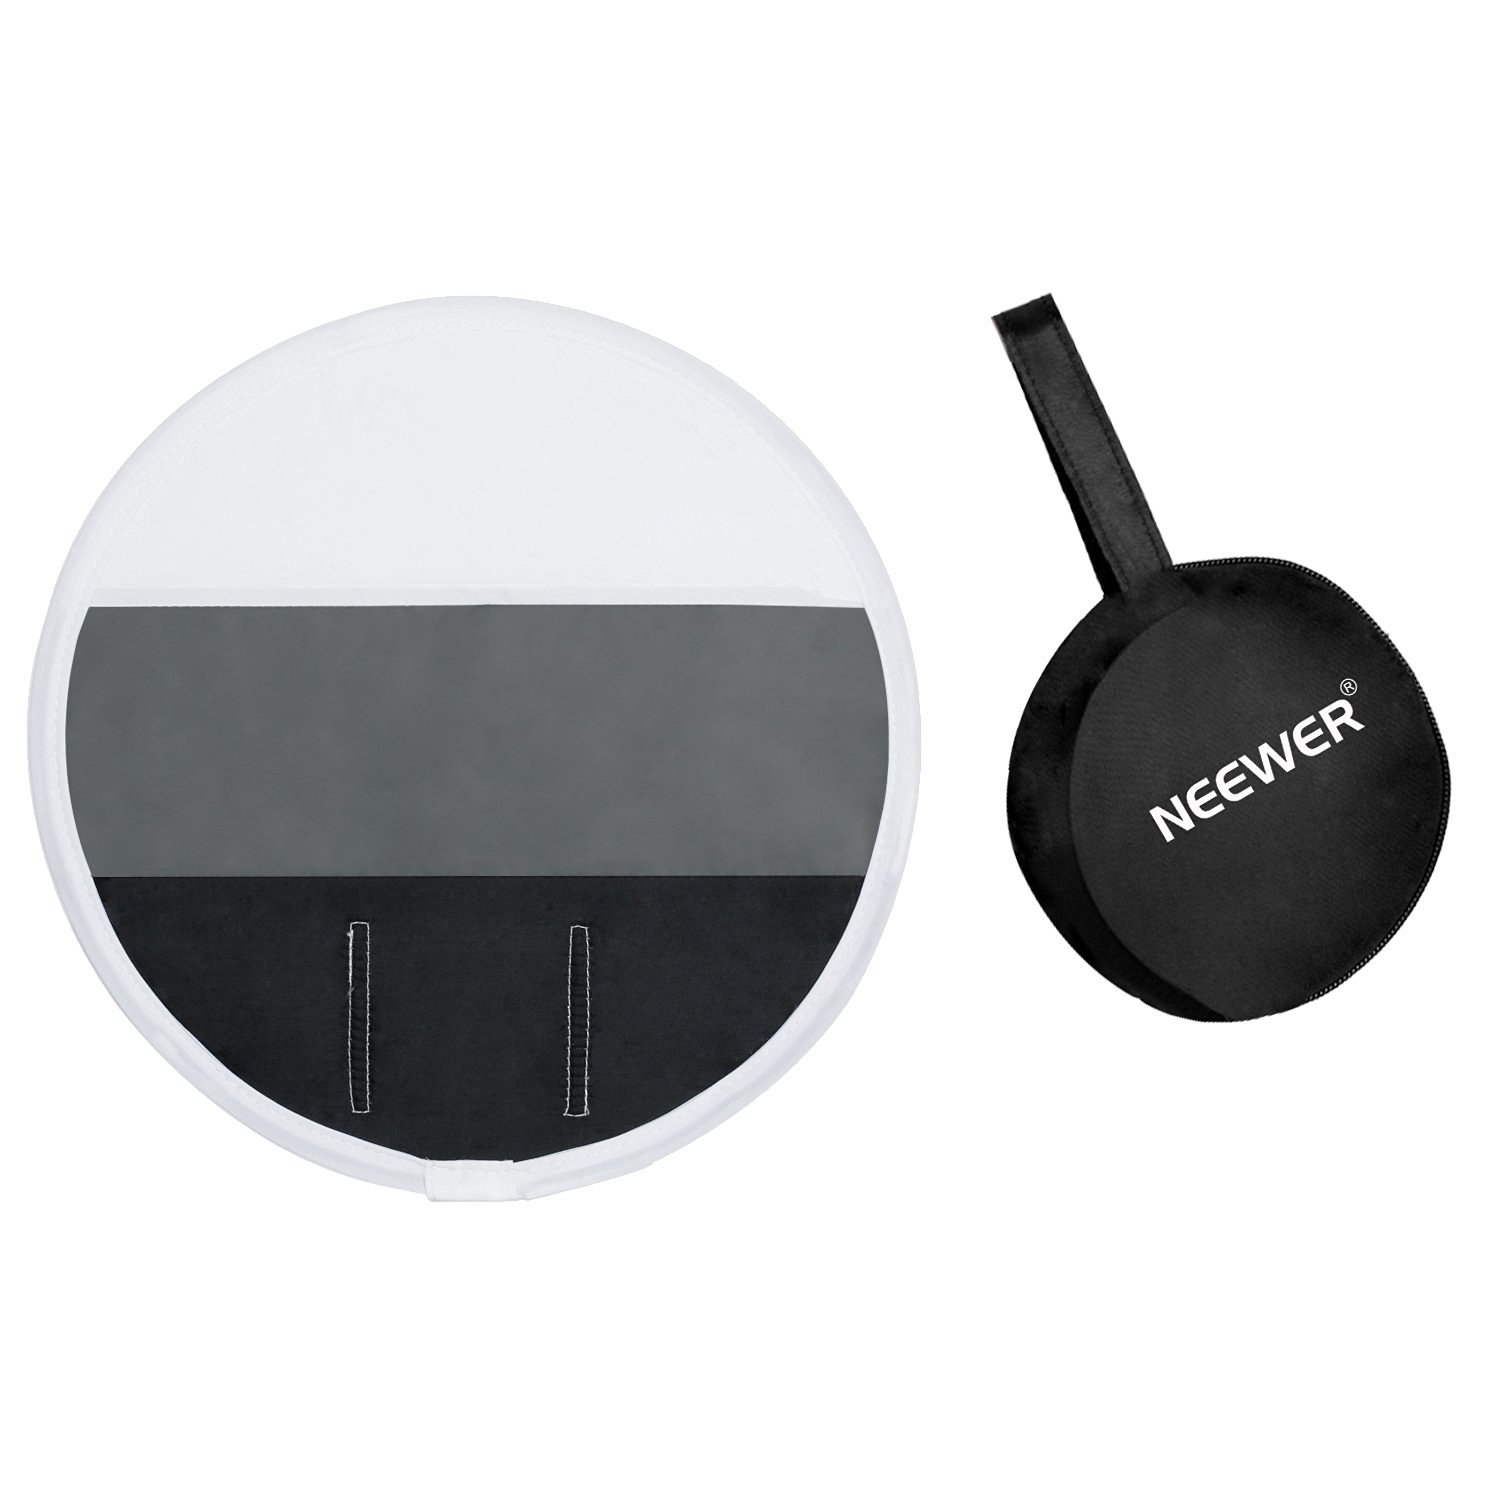 """Neewer 12""""/30cm 3-Color Balanced Portable Mini Round Soft Box Diffuser (Black, Gray, White) Diffuser Gray Card for Cannon, Nikon, Neewer, Yunnuo, Altura, Other External Speedlight Units"""